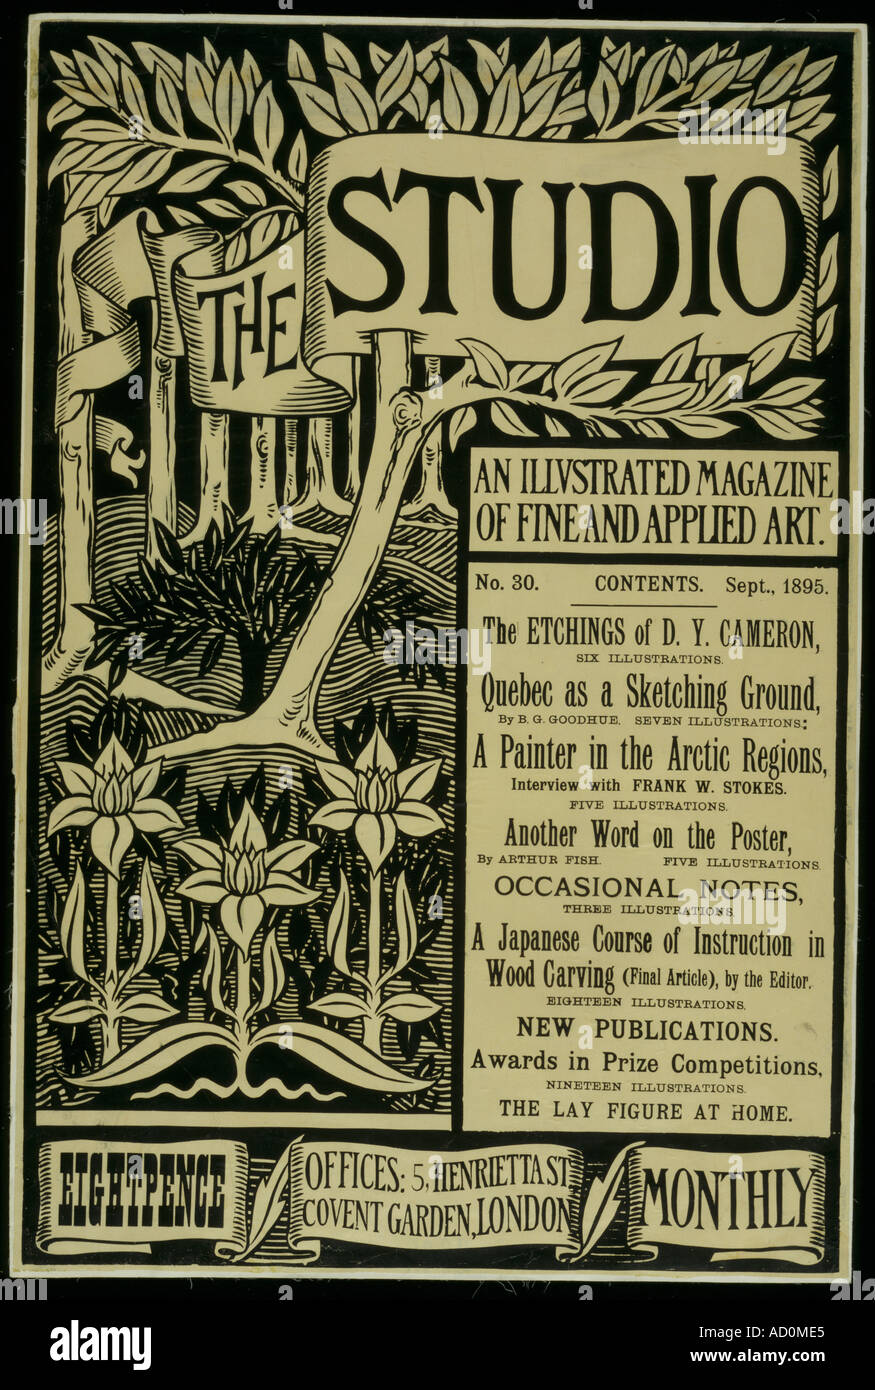 Design for first Issue of The Studio An Illustrated Magazine of Fine and Applied Art designed by Aubrey Beardsley. - Stock Image